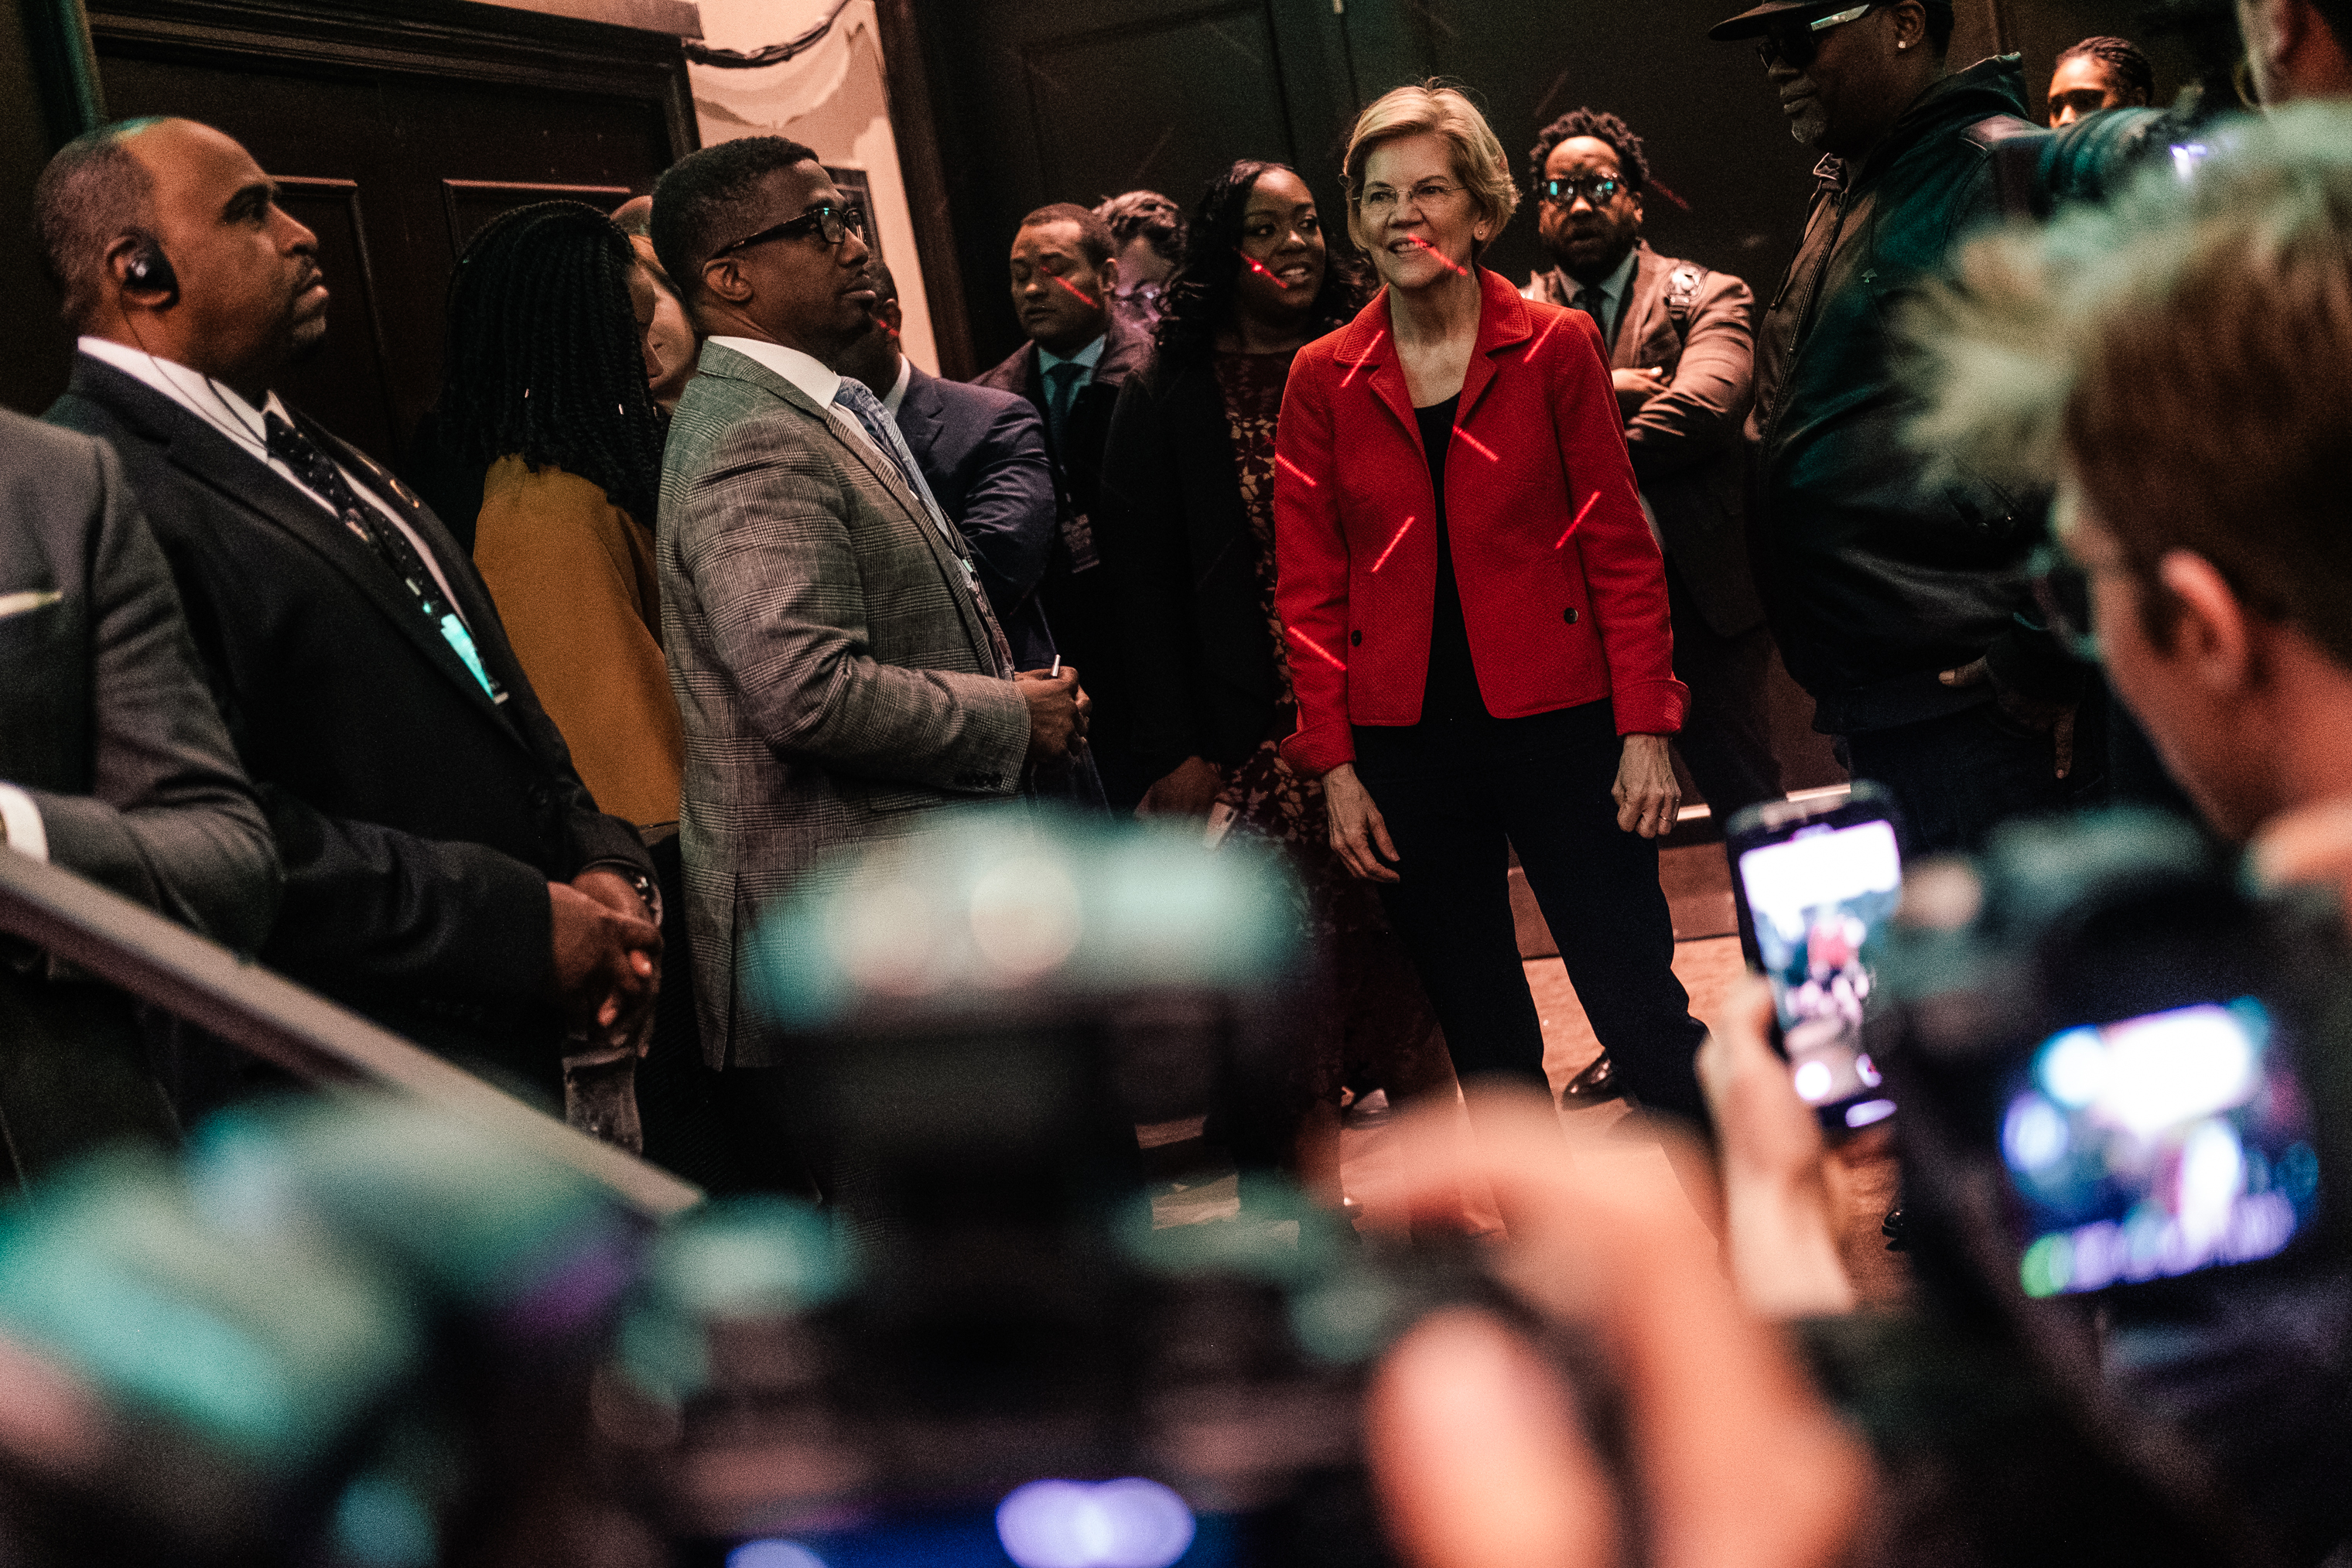 Elizabeth Warren, Massachusetts Senator, at the annual National Action Network Convention or NAN in the Sheraton Hotel in New York City on April 5, 2019.